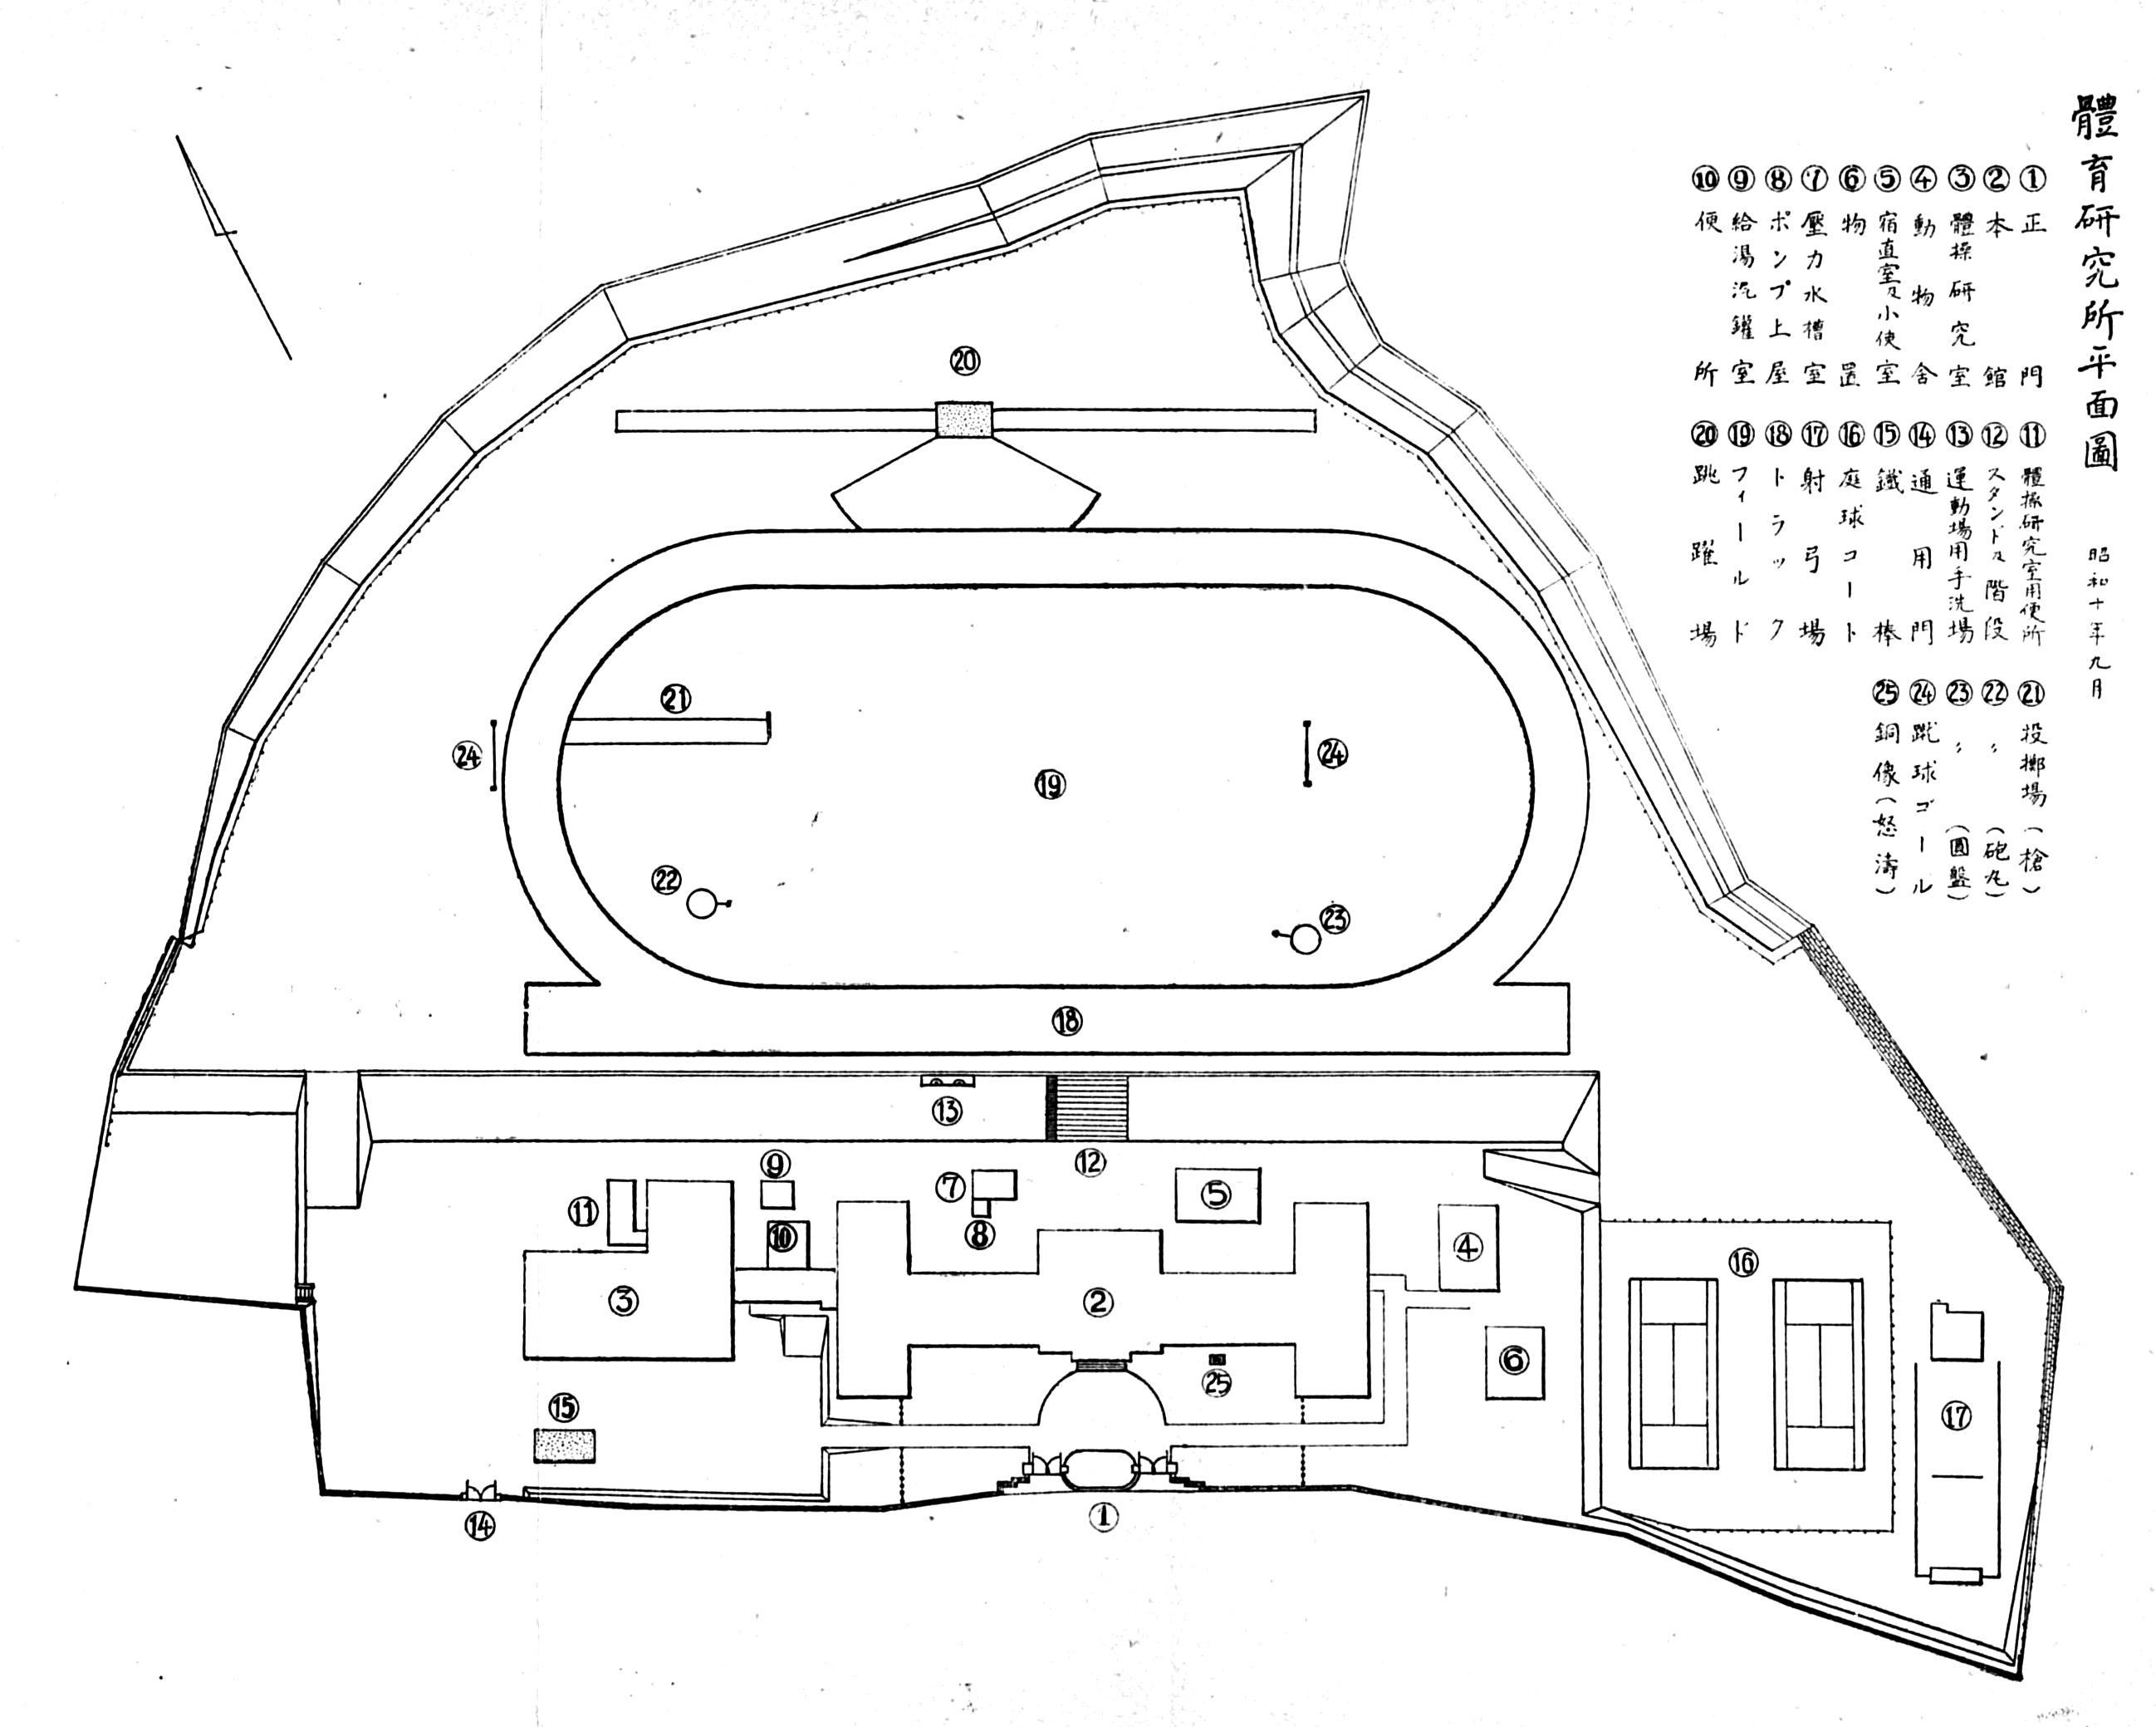 File:Site Drawing for Gov. Inst. for Research in Physical